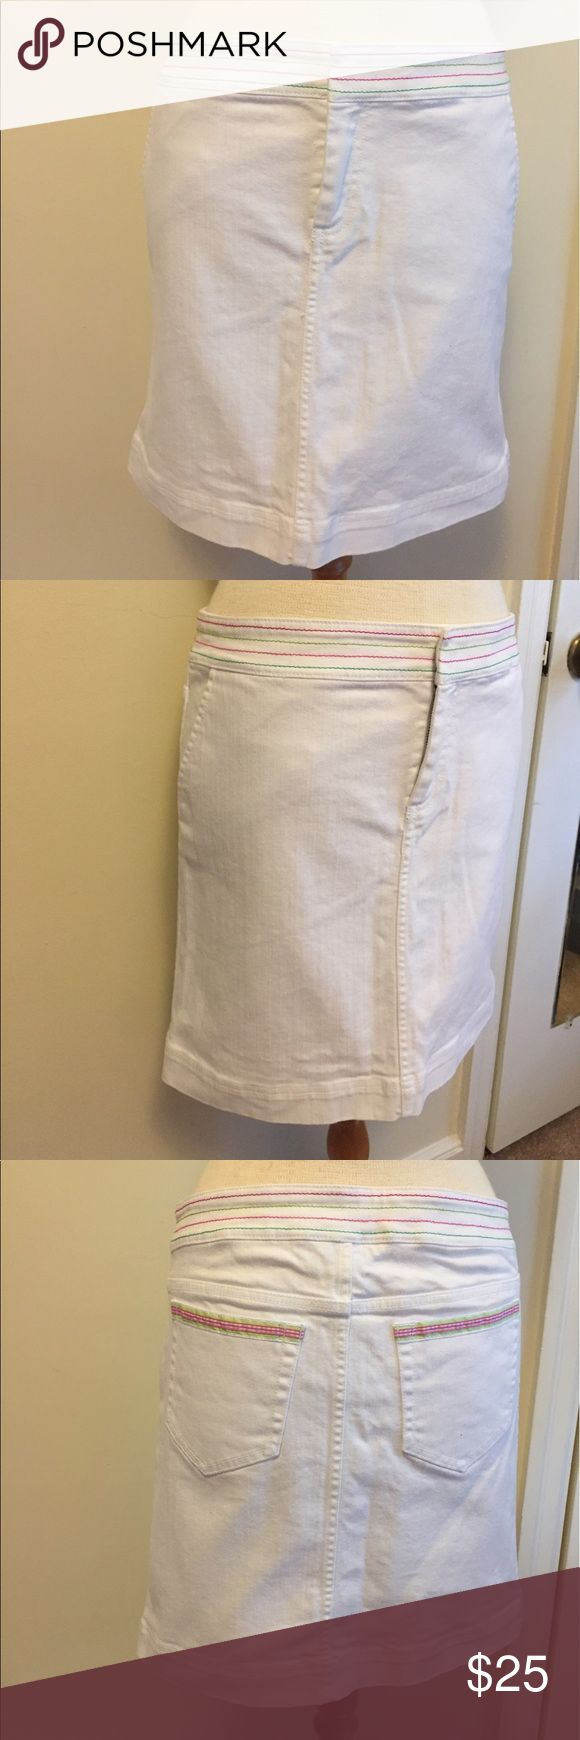 White Lilly Pulitzer denim skirt EUC white denim skirt! Perfect for summer or spring! This is an older style but still so in style! Lilly Pulitzer Skirts